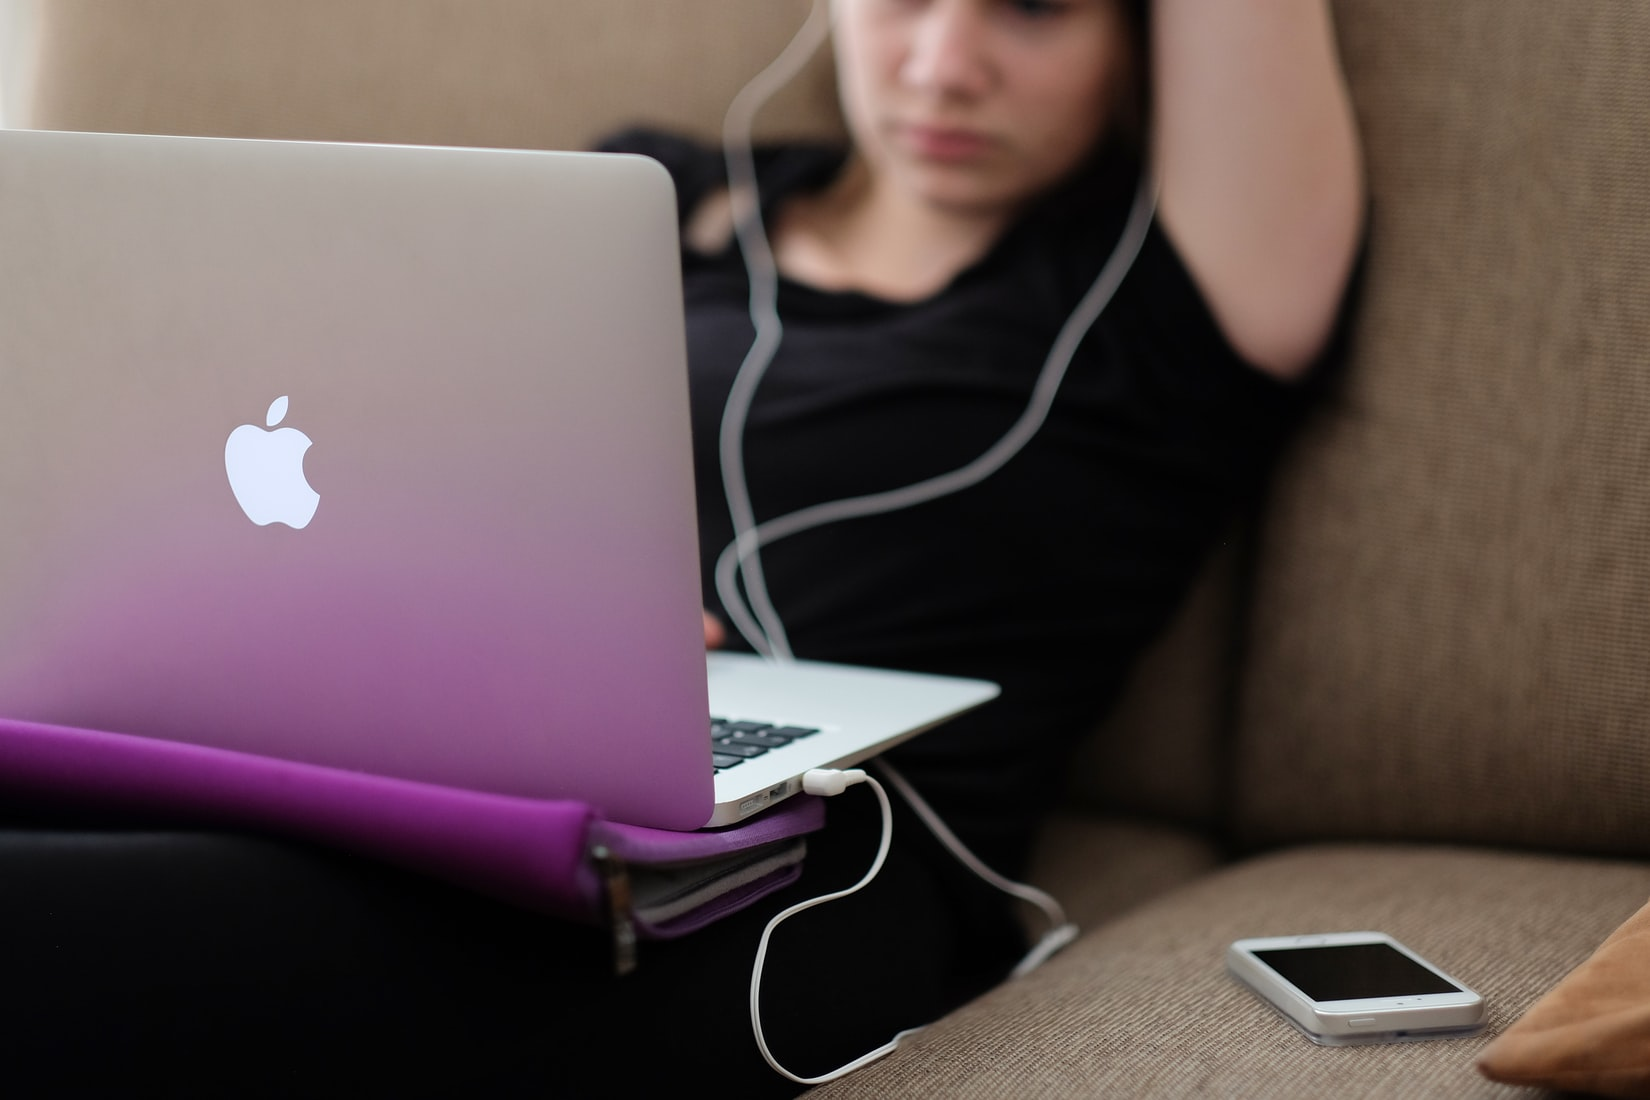 Young girl sitting on sofa and checking social media on MacBook air with headphones on